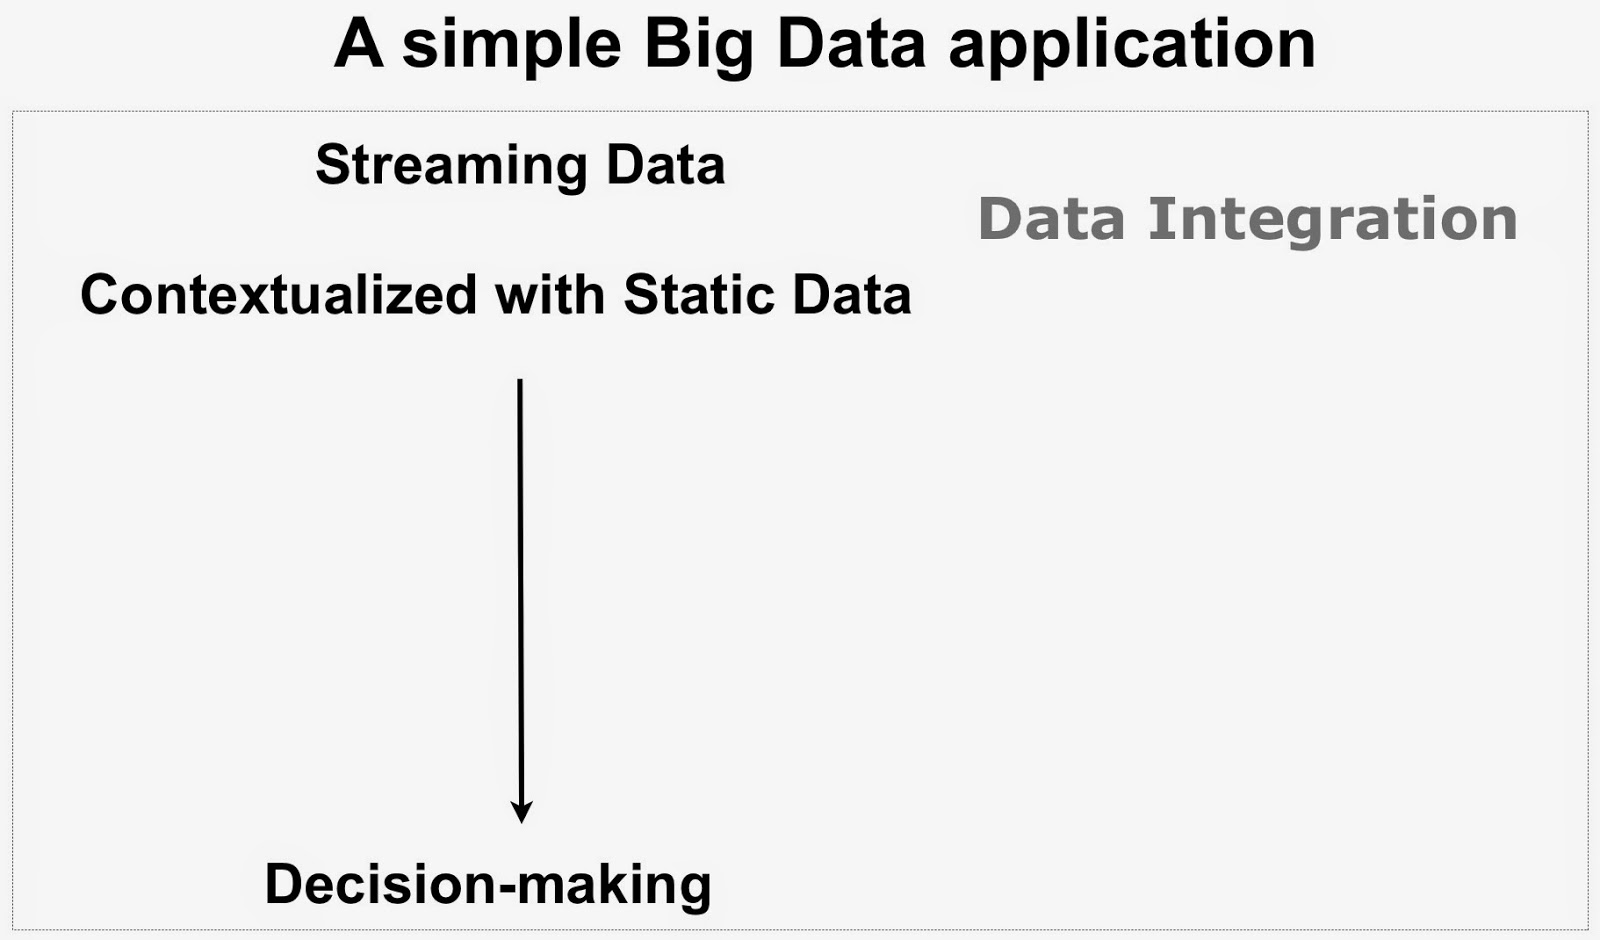 Data Fusion: Big Data applications